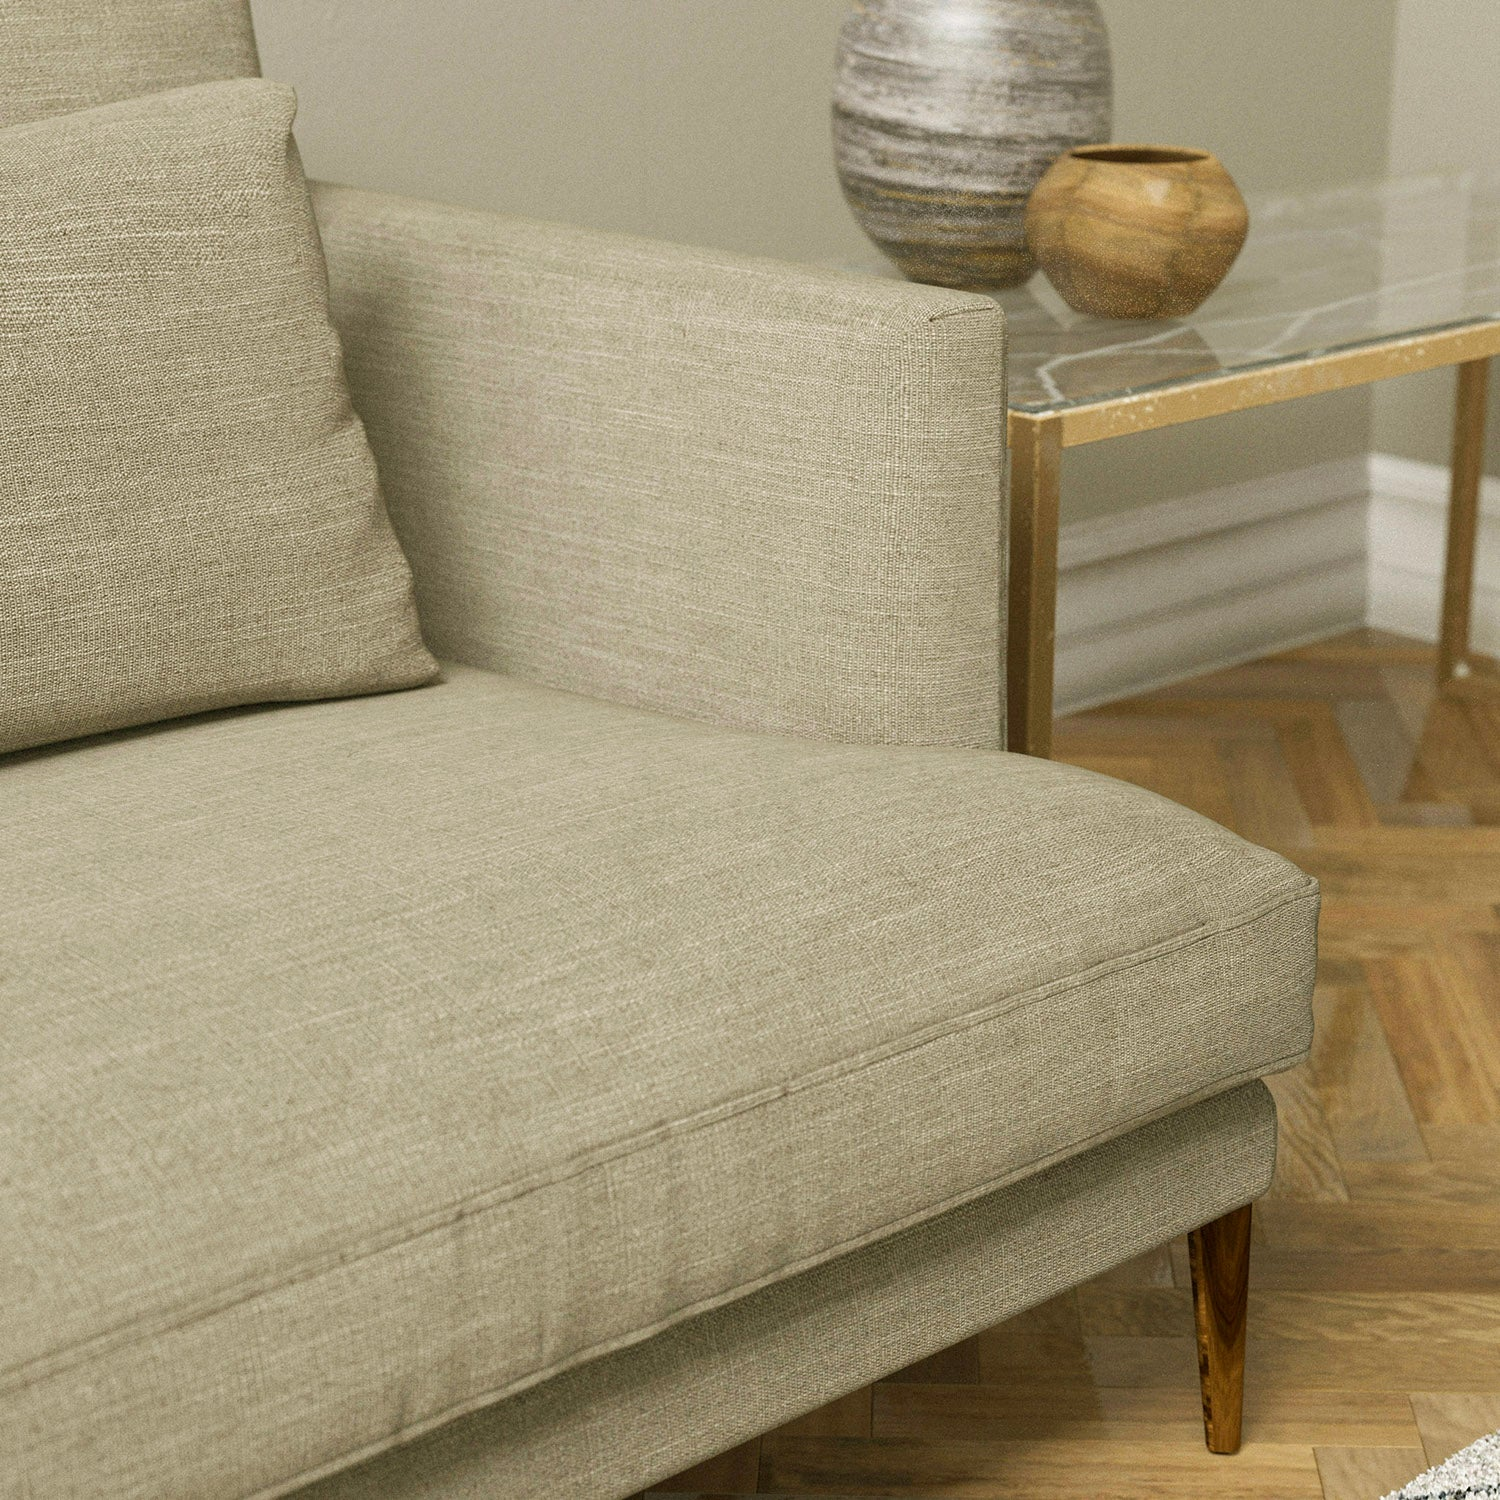 Sofa upholstered in a linen coloured plain linen blend fabric